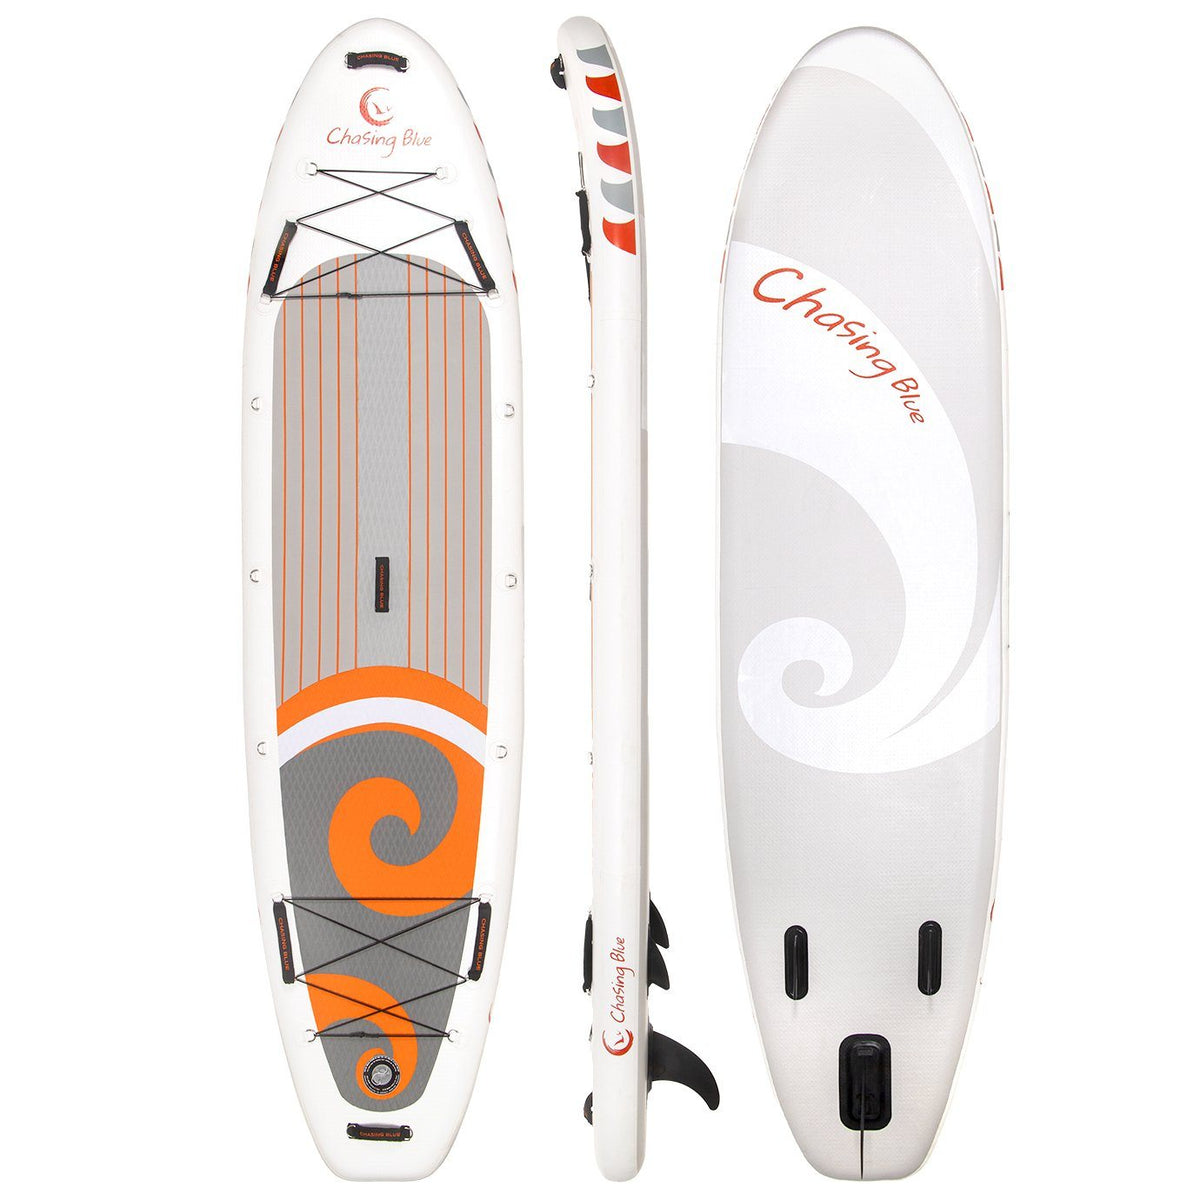 Outdoor Master Solar Spirit Inflatable iSUP Board